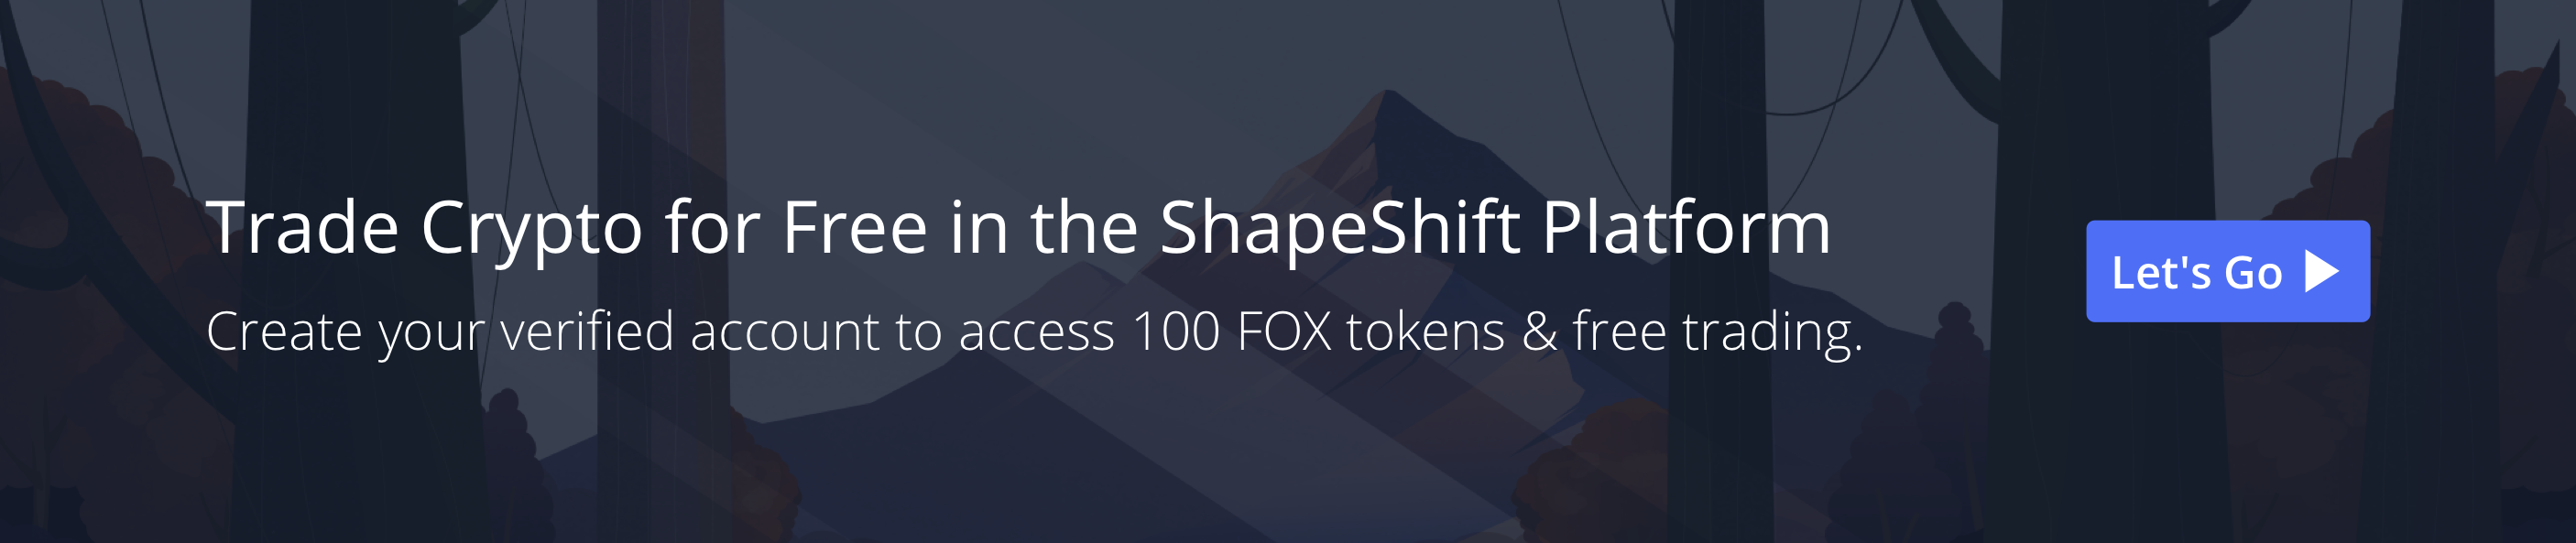 Receive 100 FOX tokens when you create a ShapeShift account. Trade crypto for free in the ShapeShift Platform. ShapeShift.com